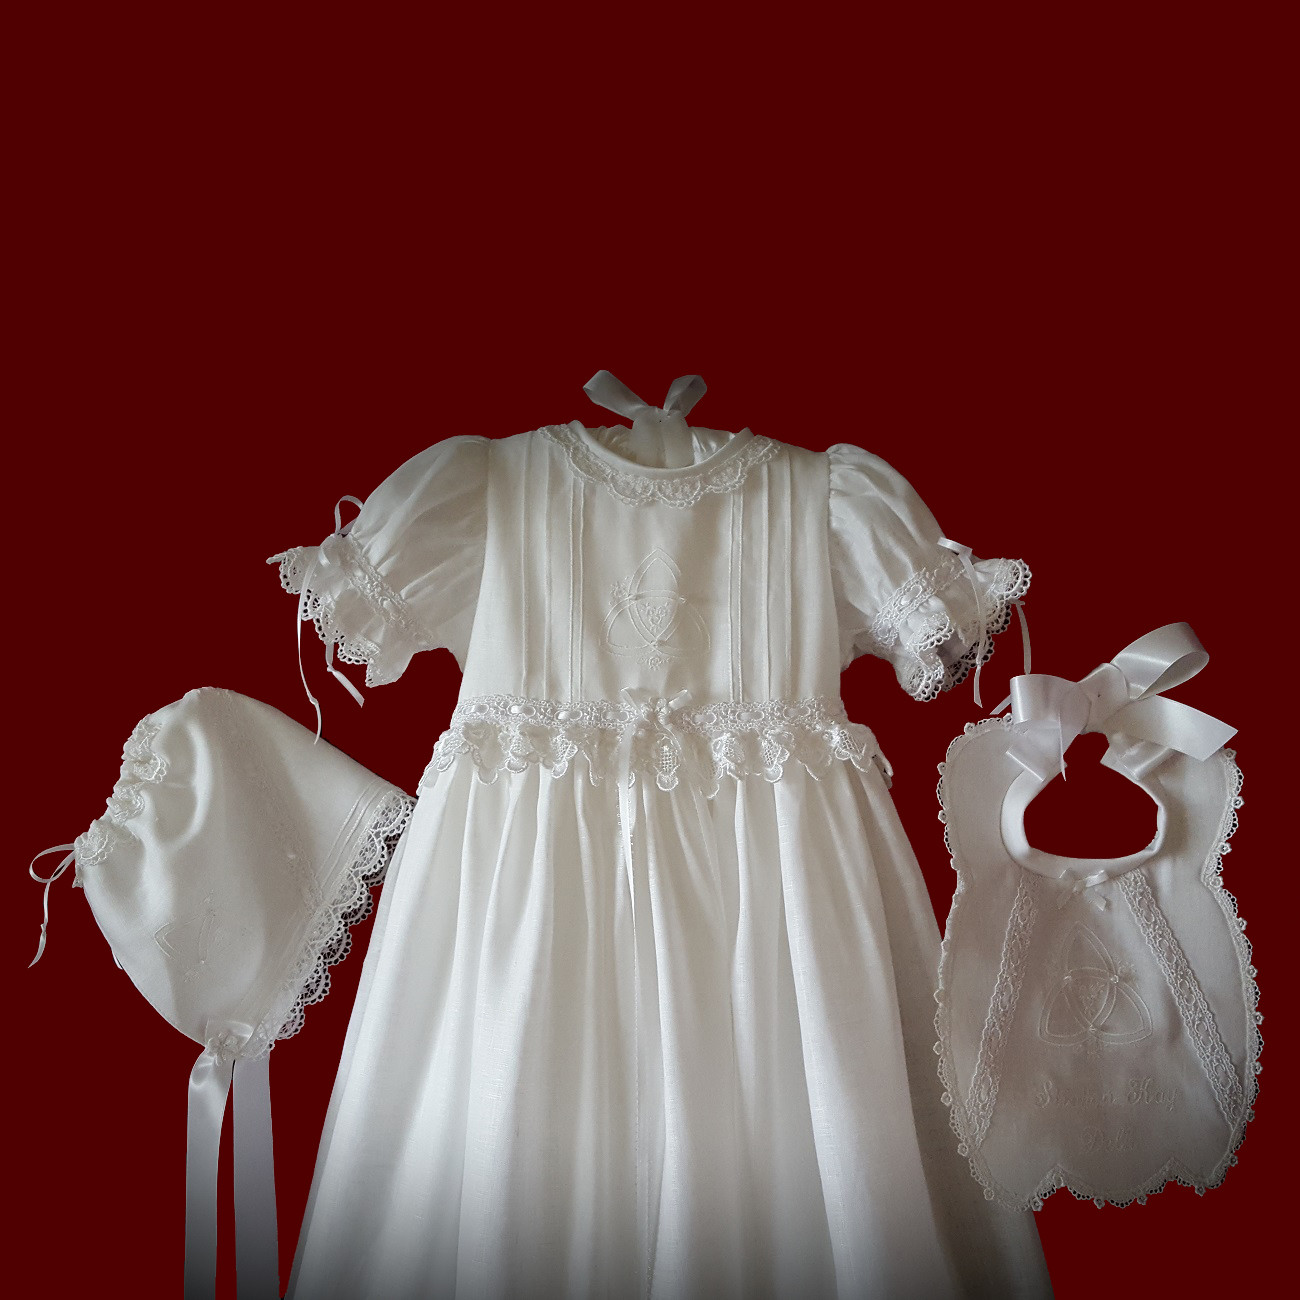 Irish Girls Christening Gown With Embroidered Celtic Cross